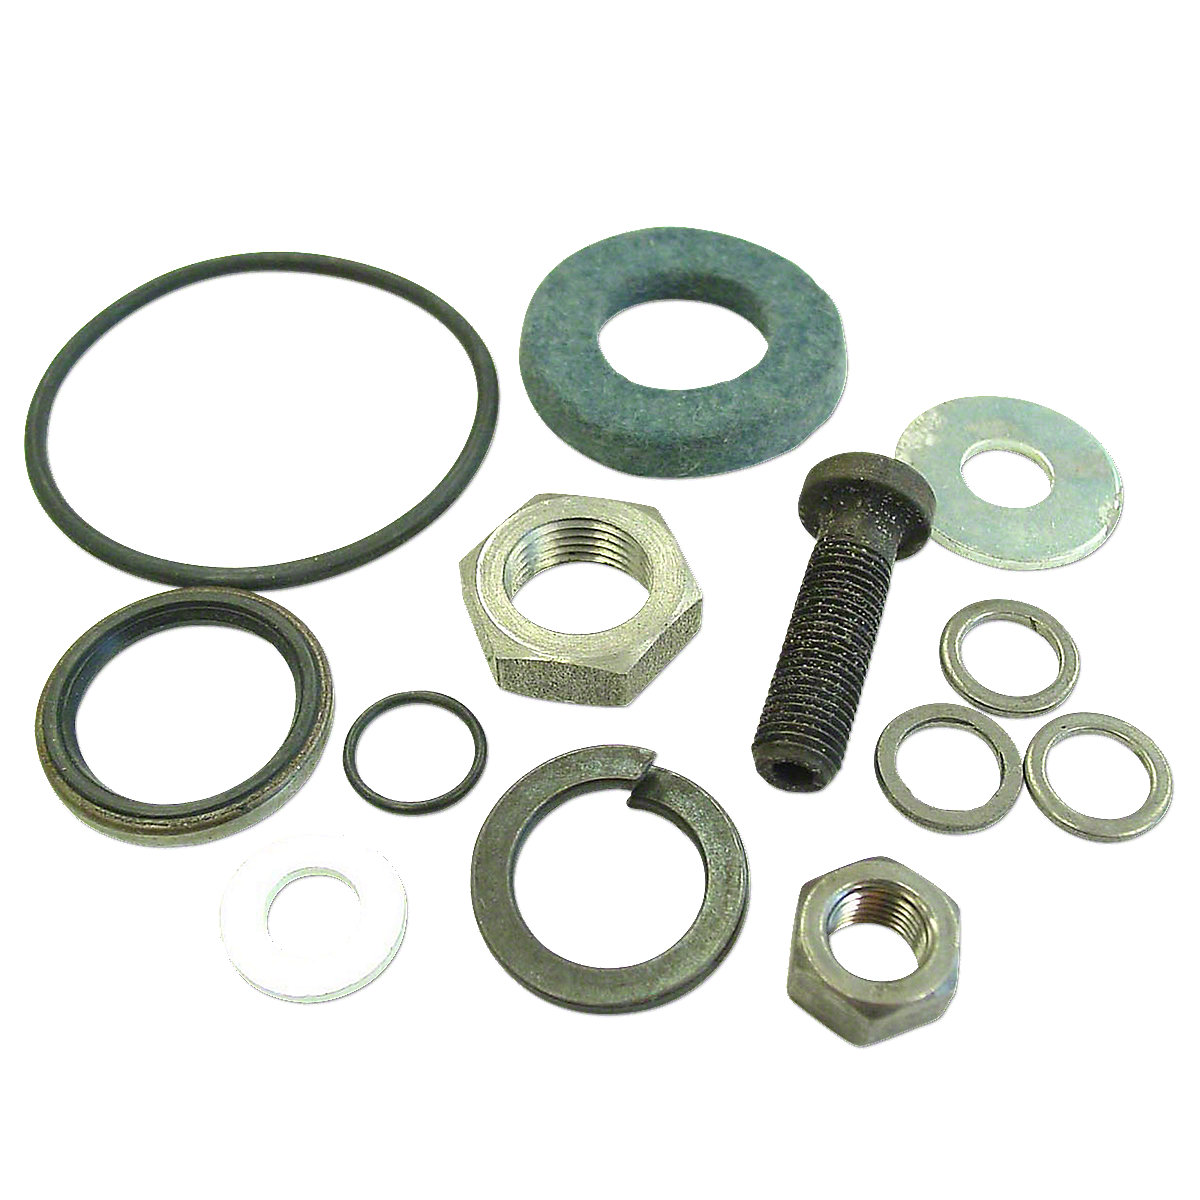 Steering Sector Hardware and Seal Kit